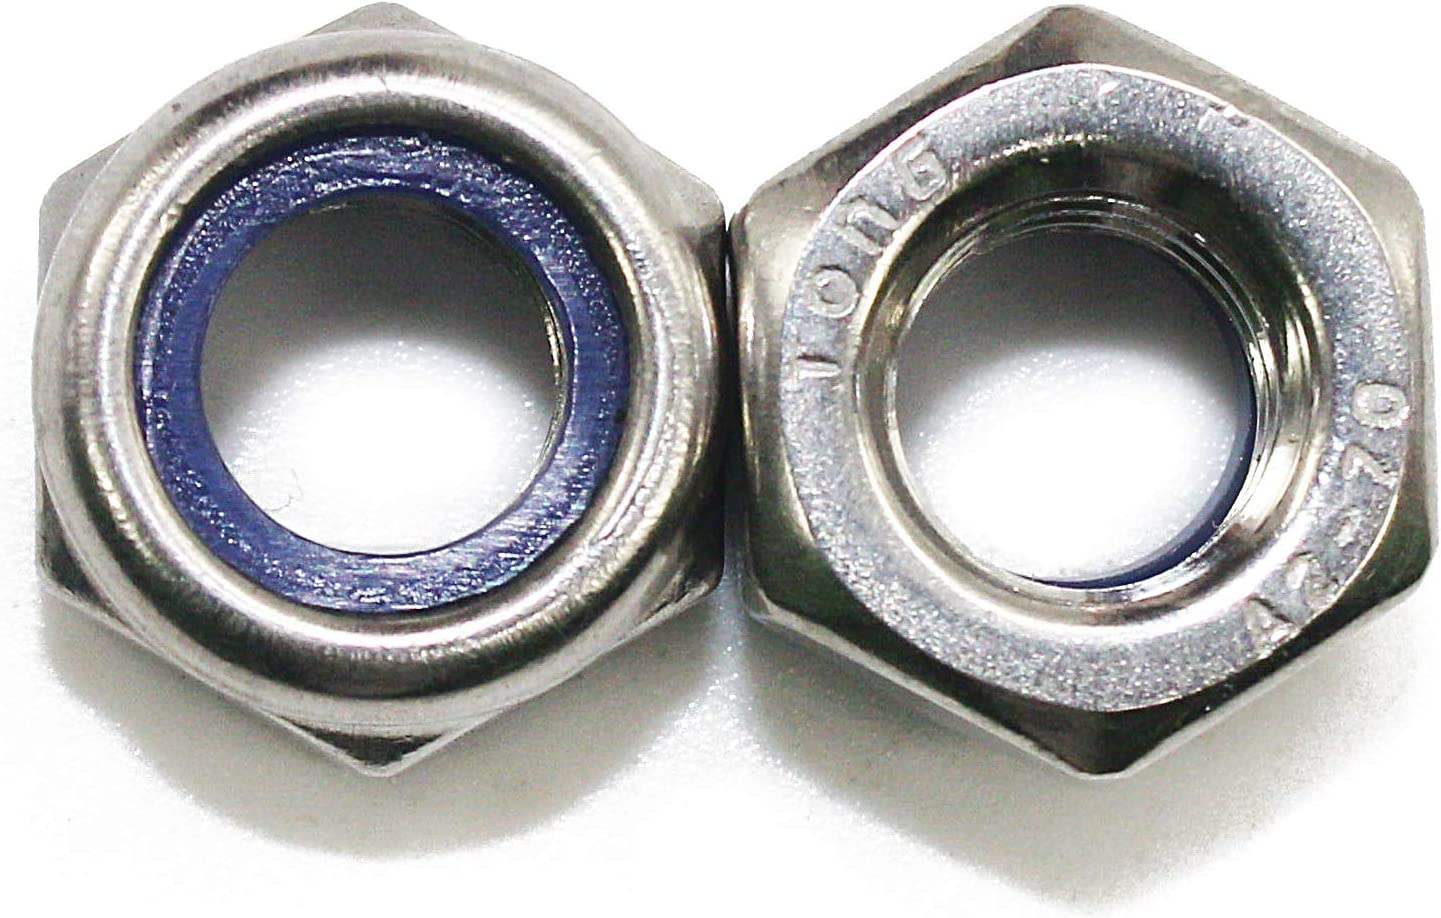 Hexagonal Safety Nuts with M12 x 1.75 mm Nylon Insert Pack of 10 304 Stainless Steel Smooth Finish